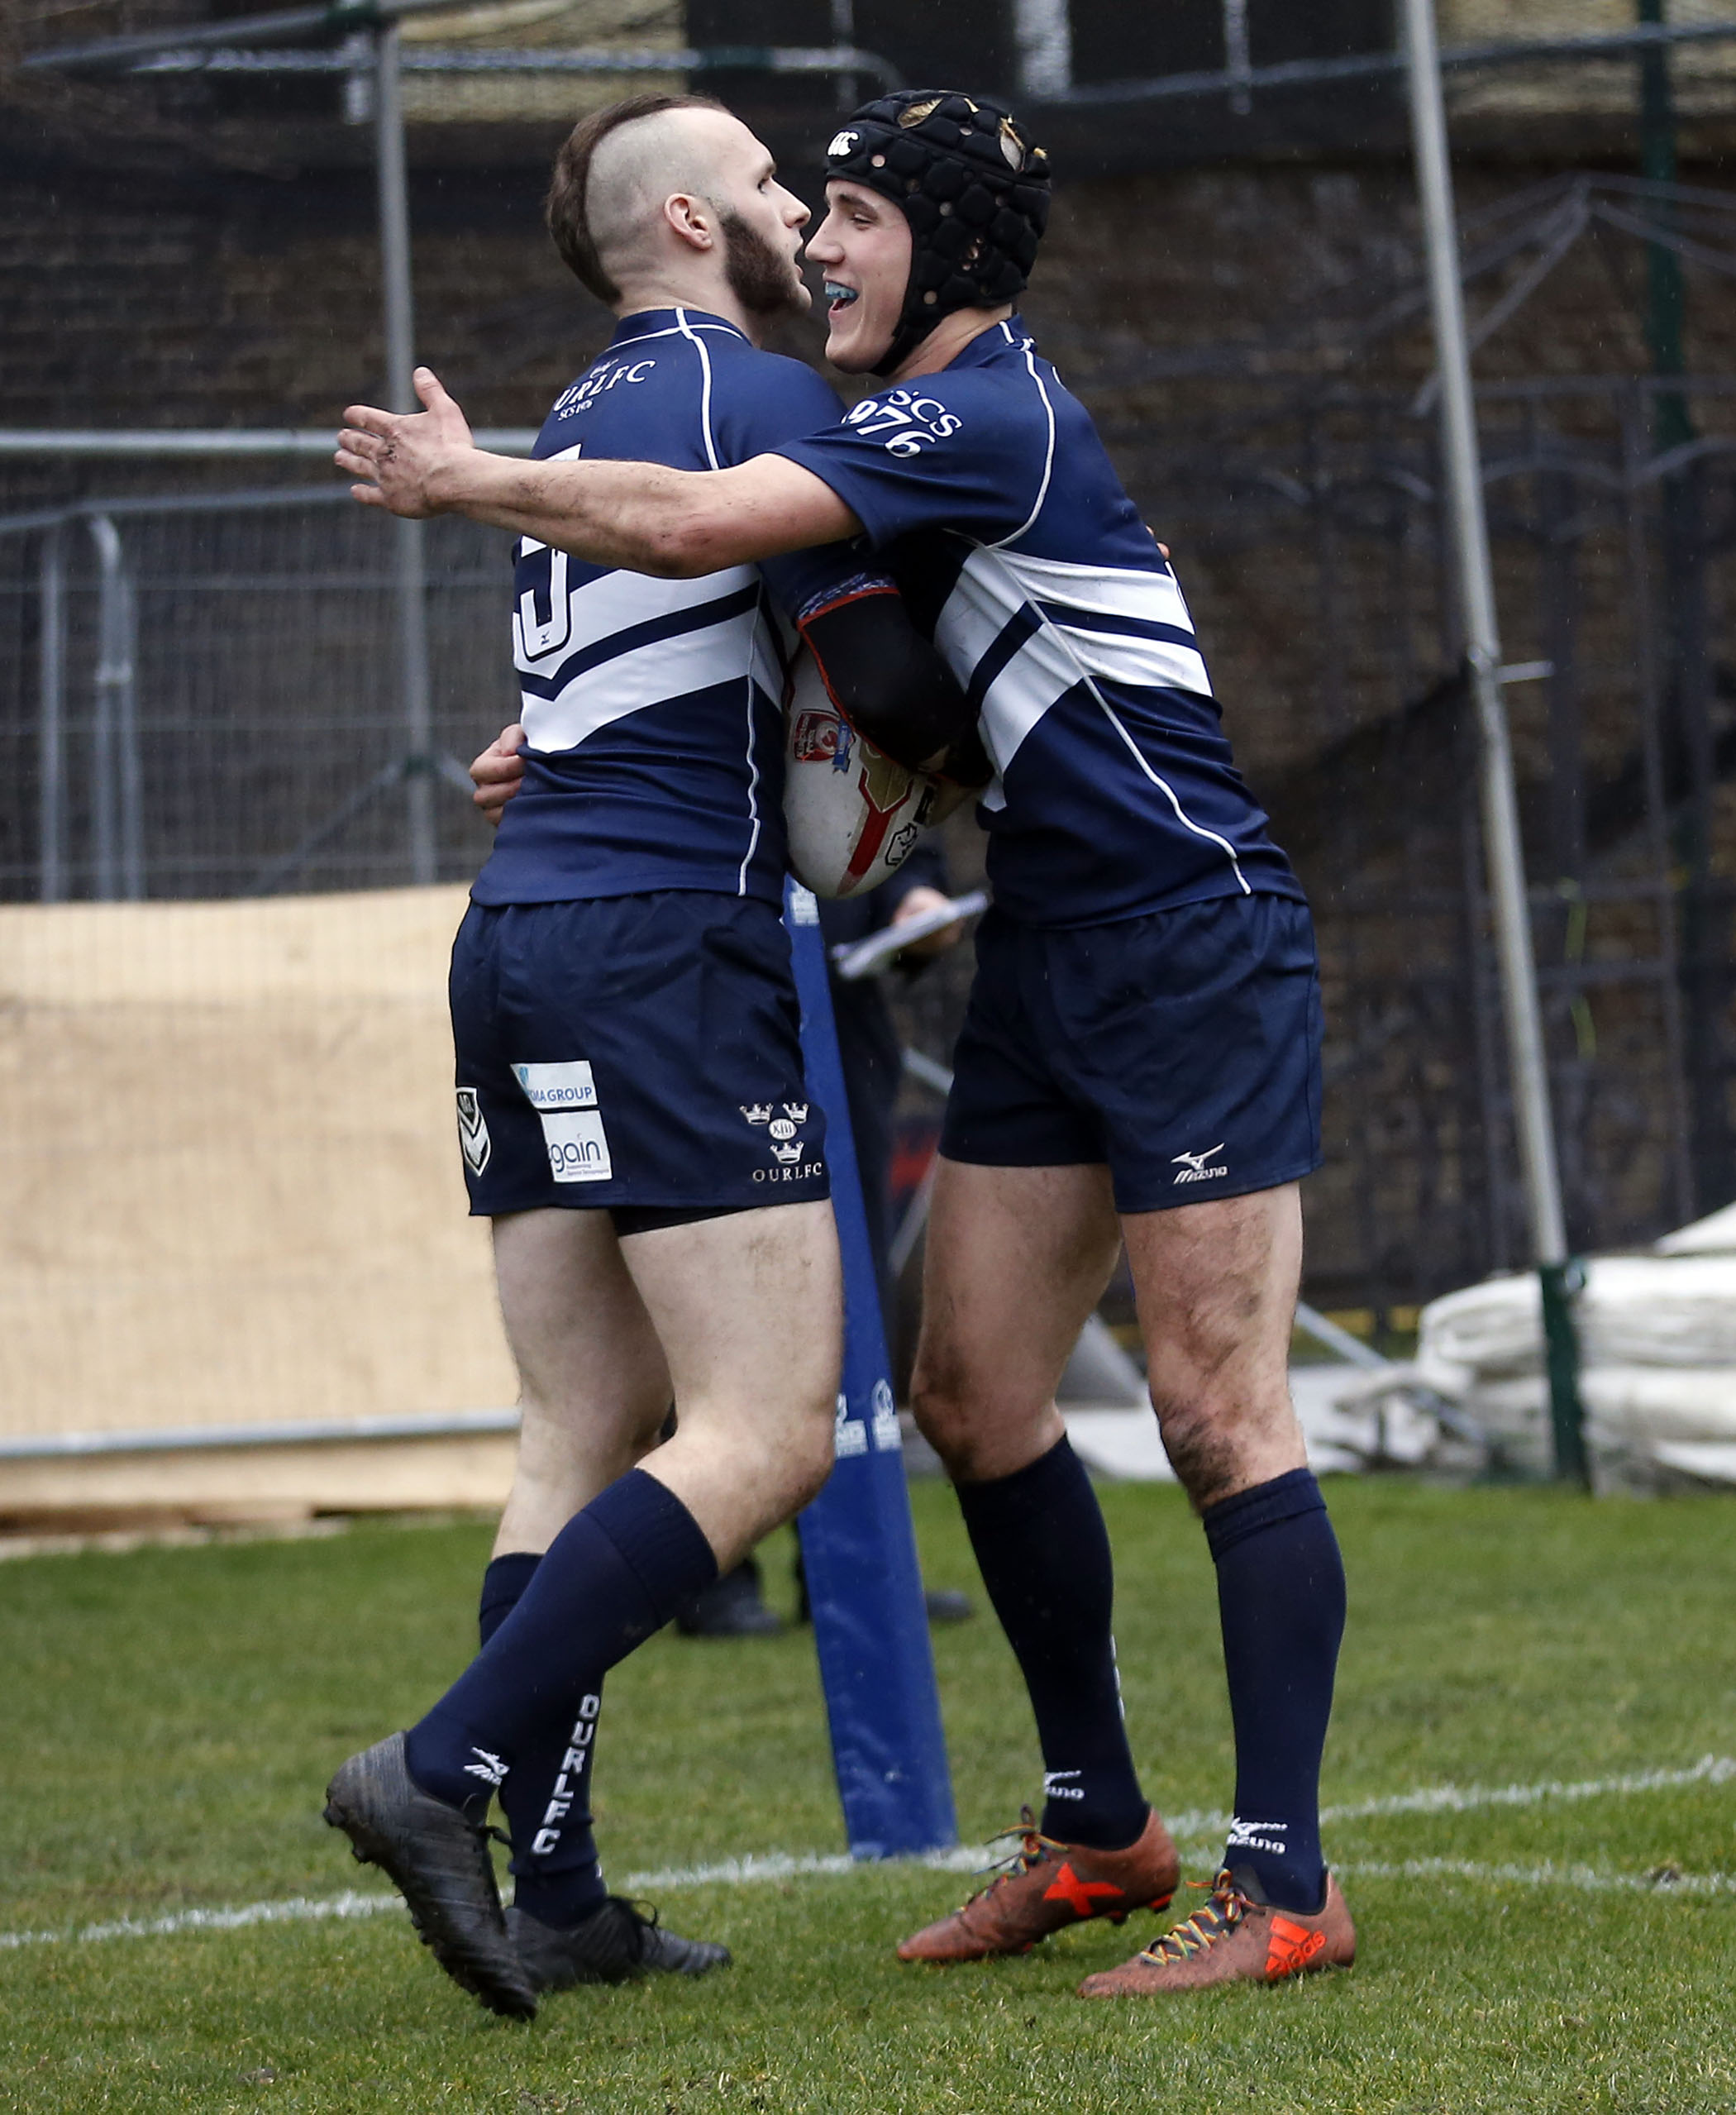 John Wylde (L) congratulated on his try for Oxford the RCMA Varsity Rugby League game between Cambridge University and Oxford University at the HAC Ground, Moorgate, London on Fri Mar 9, 2018